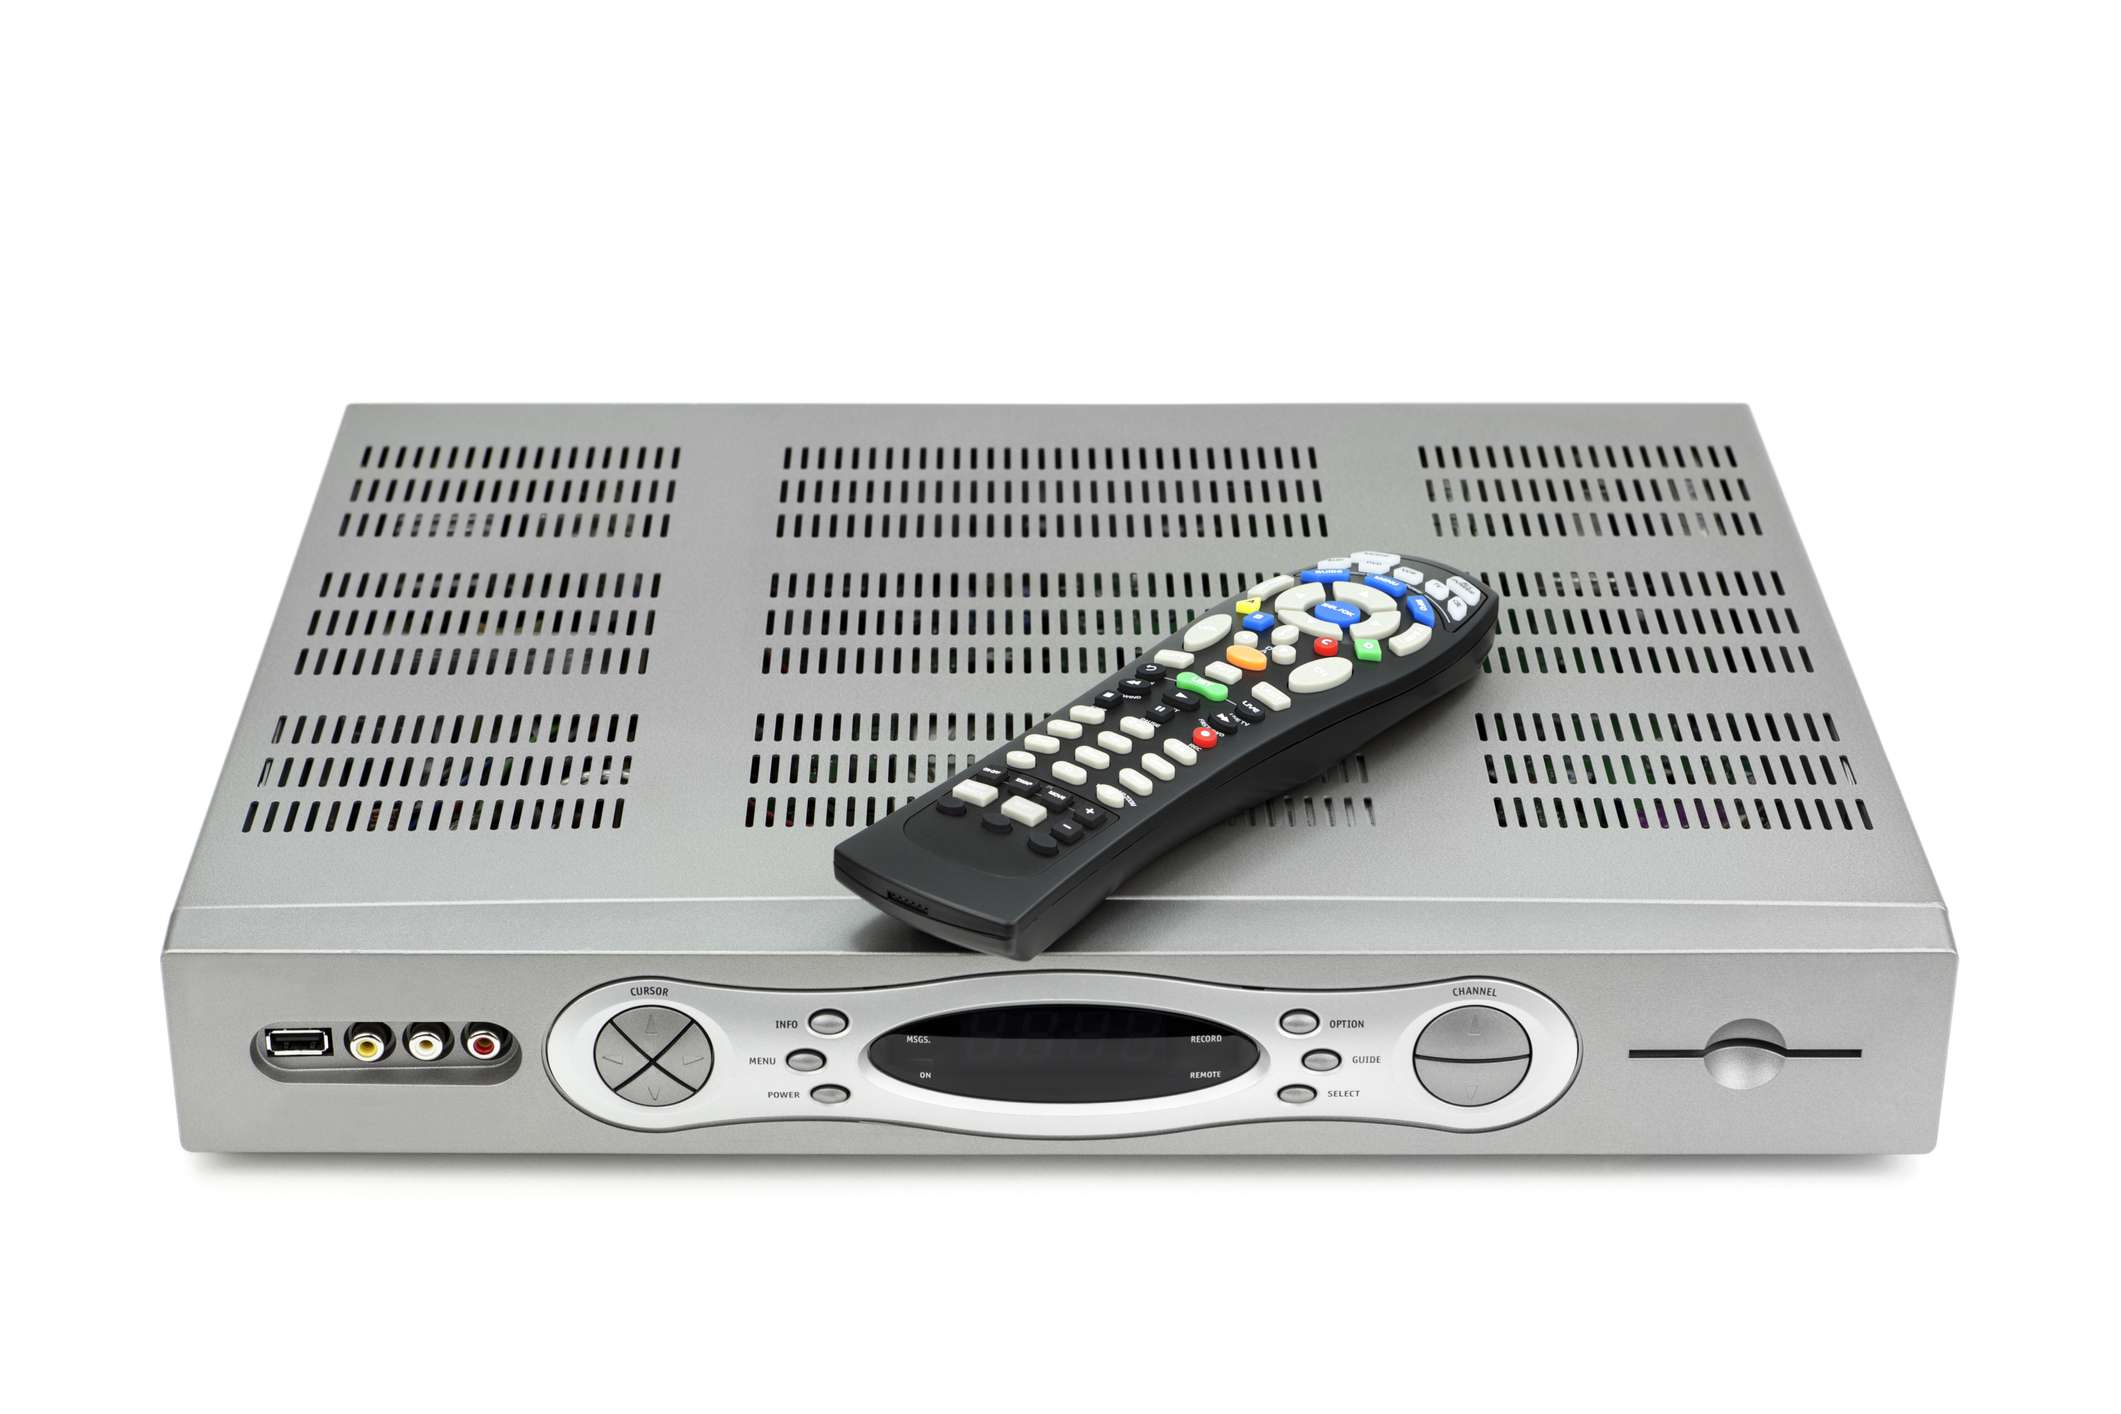 A cable box with a built-in DVR function.